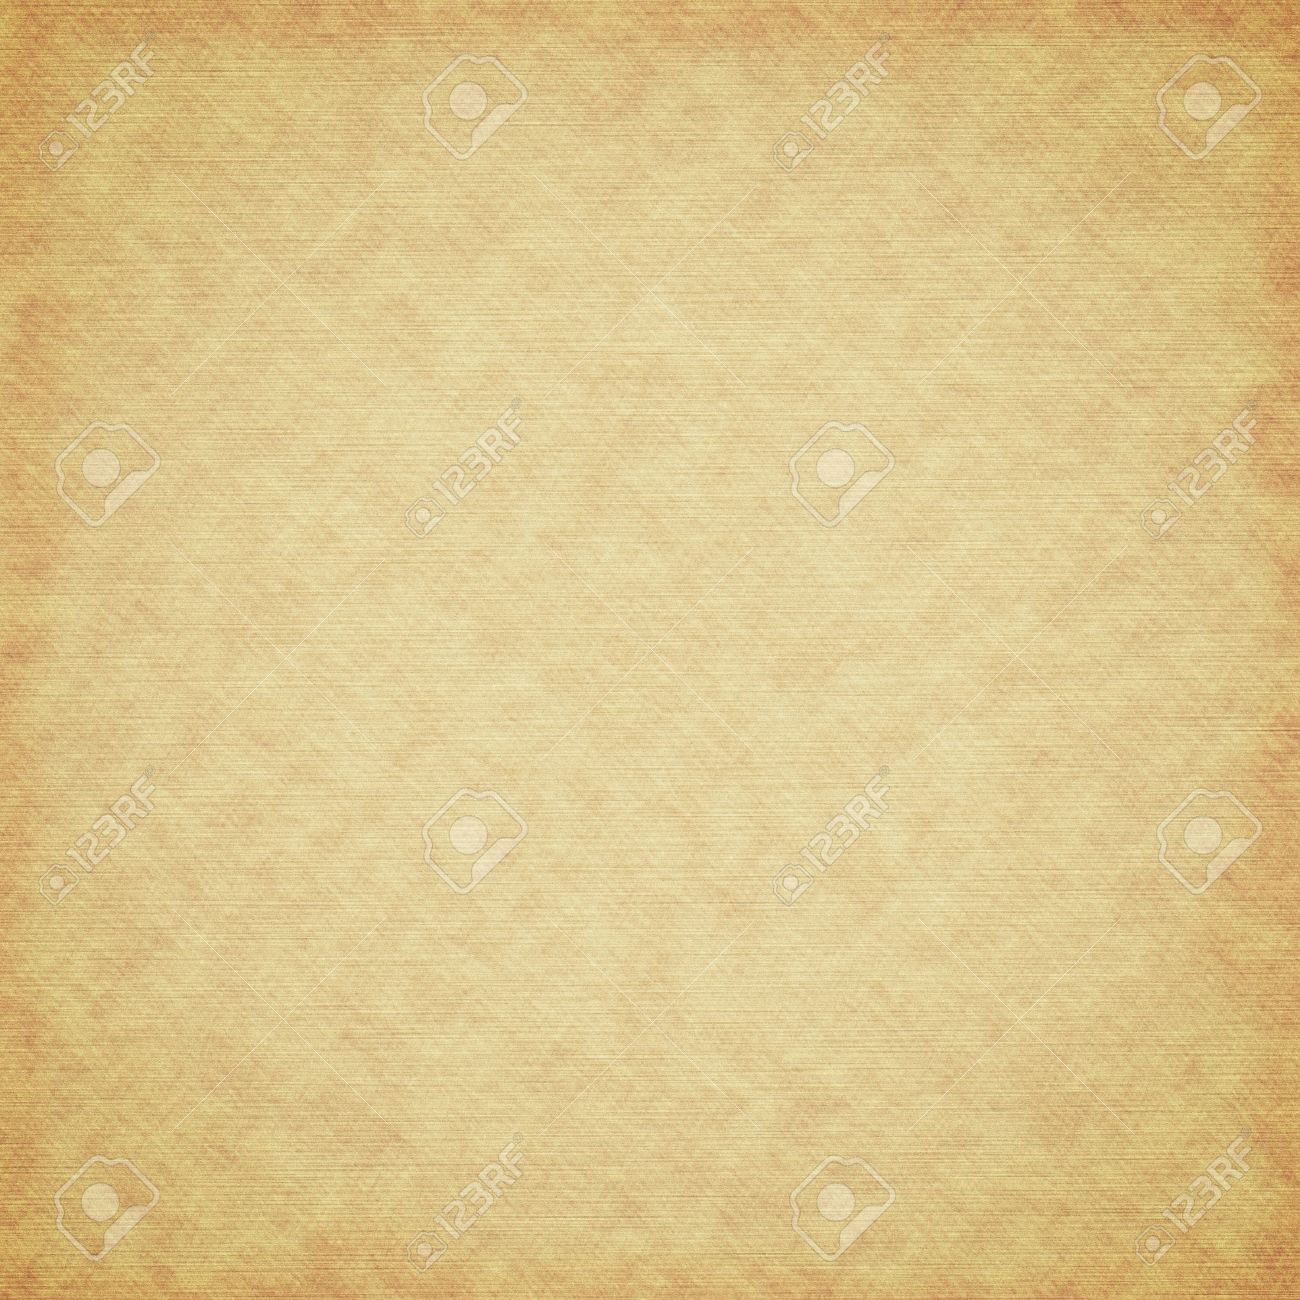 Old paper template background or texture stock photo picture and old paper template background or texture stock photo 17983019 pronofoot35fo Gallery